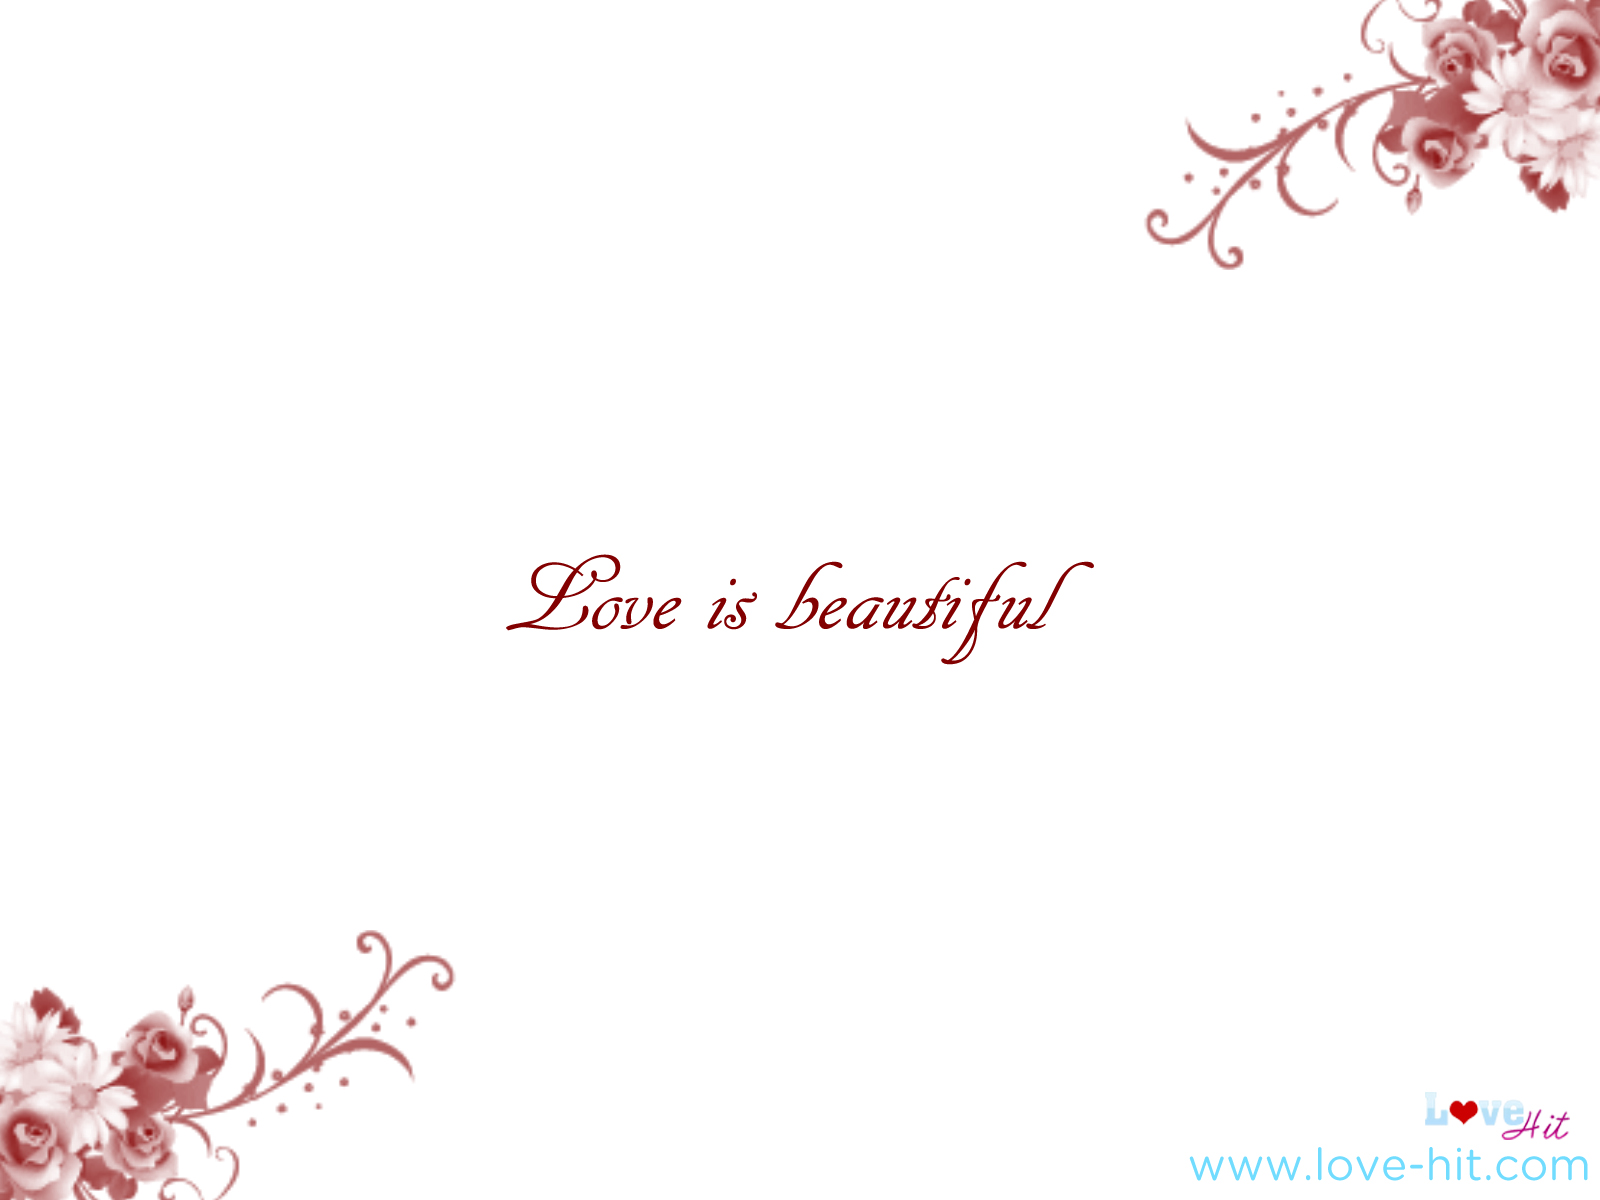 Love is beautiful